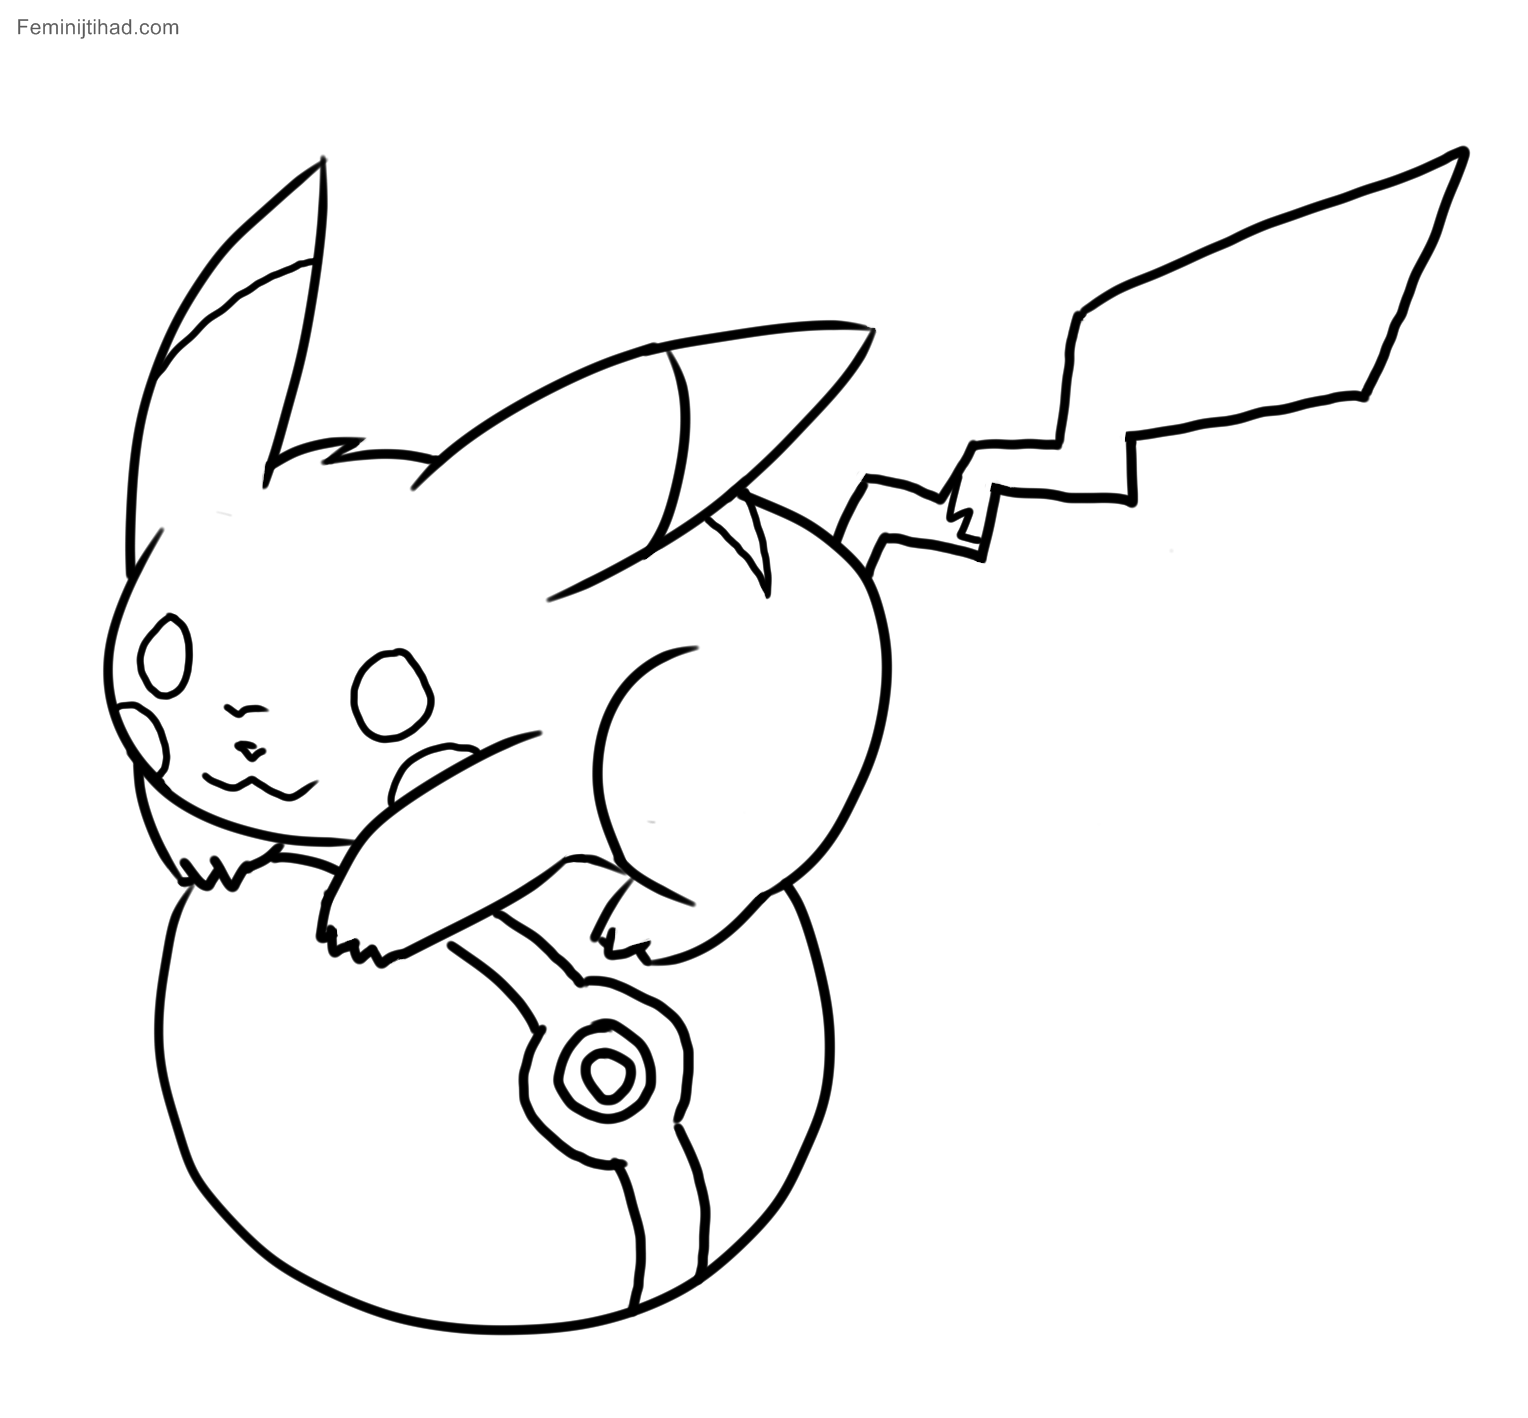 1528x1418 Pokemon Coloring Pages To Print Coloring Pages For Kids